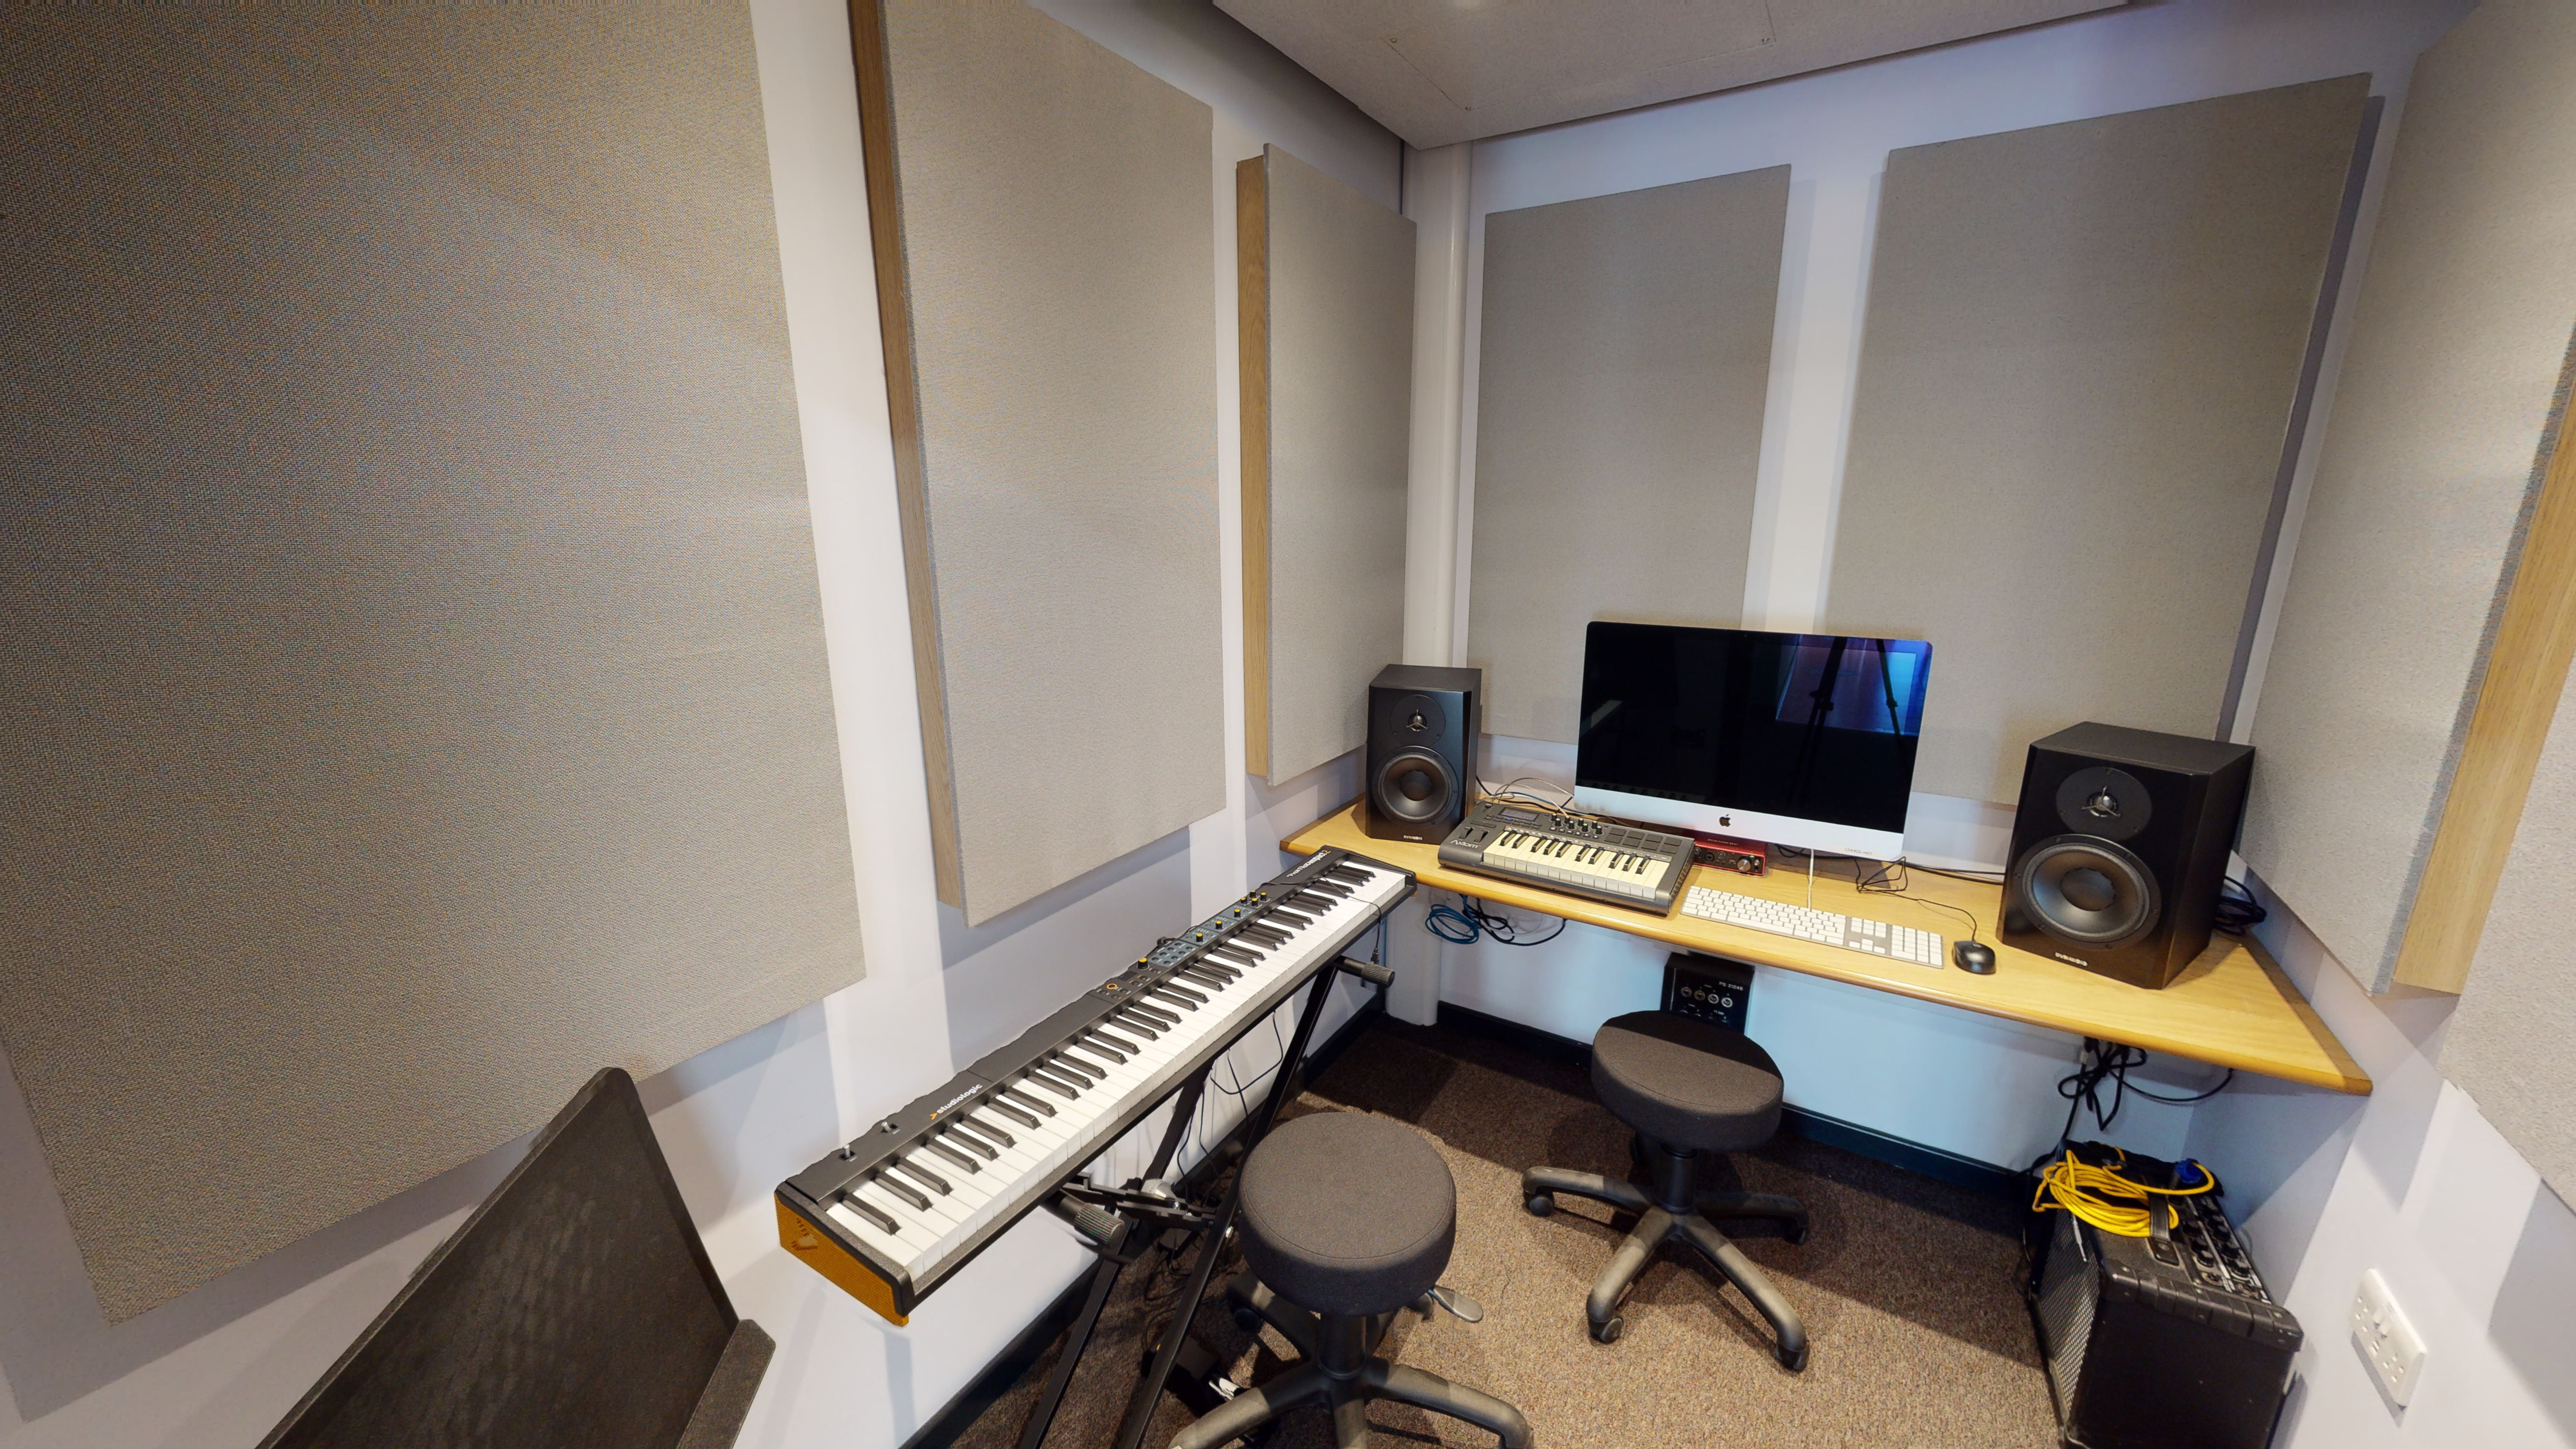 Small insulated room with music keyboard, speakers and computer/ moniotr.